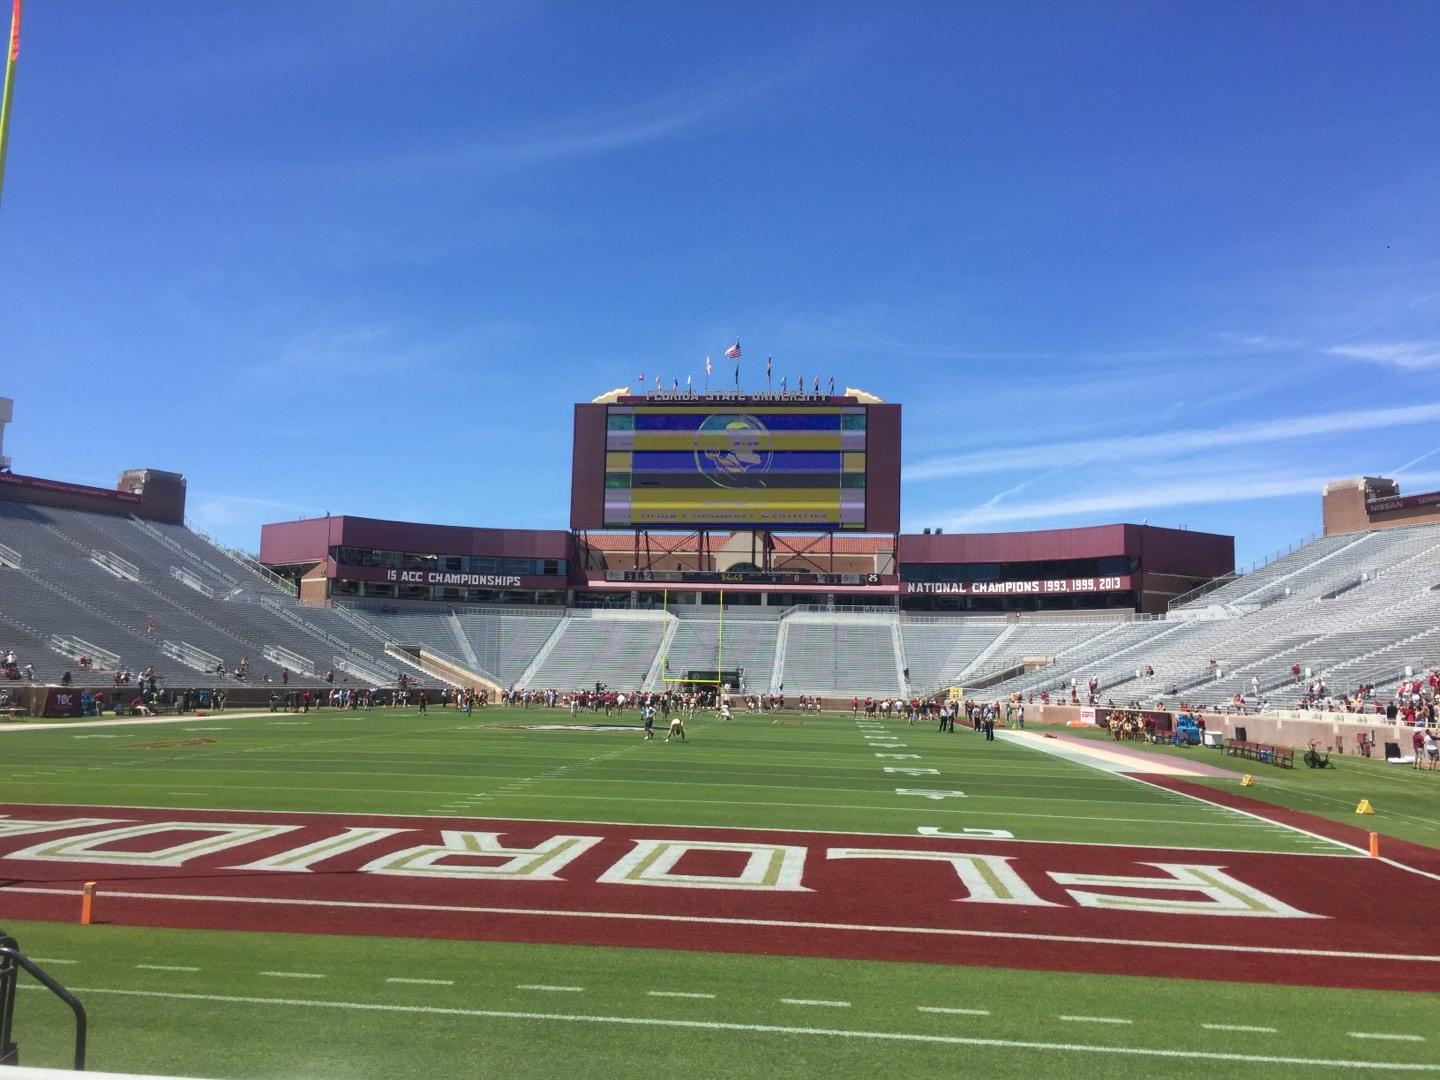 Bobby Bowden Field at Doak Campbell Stadium Section 119 Row 2 Seat 10